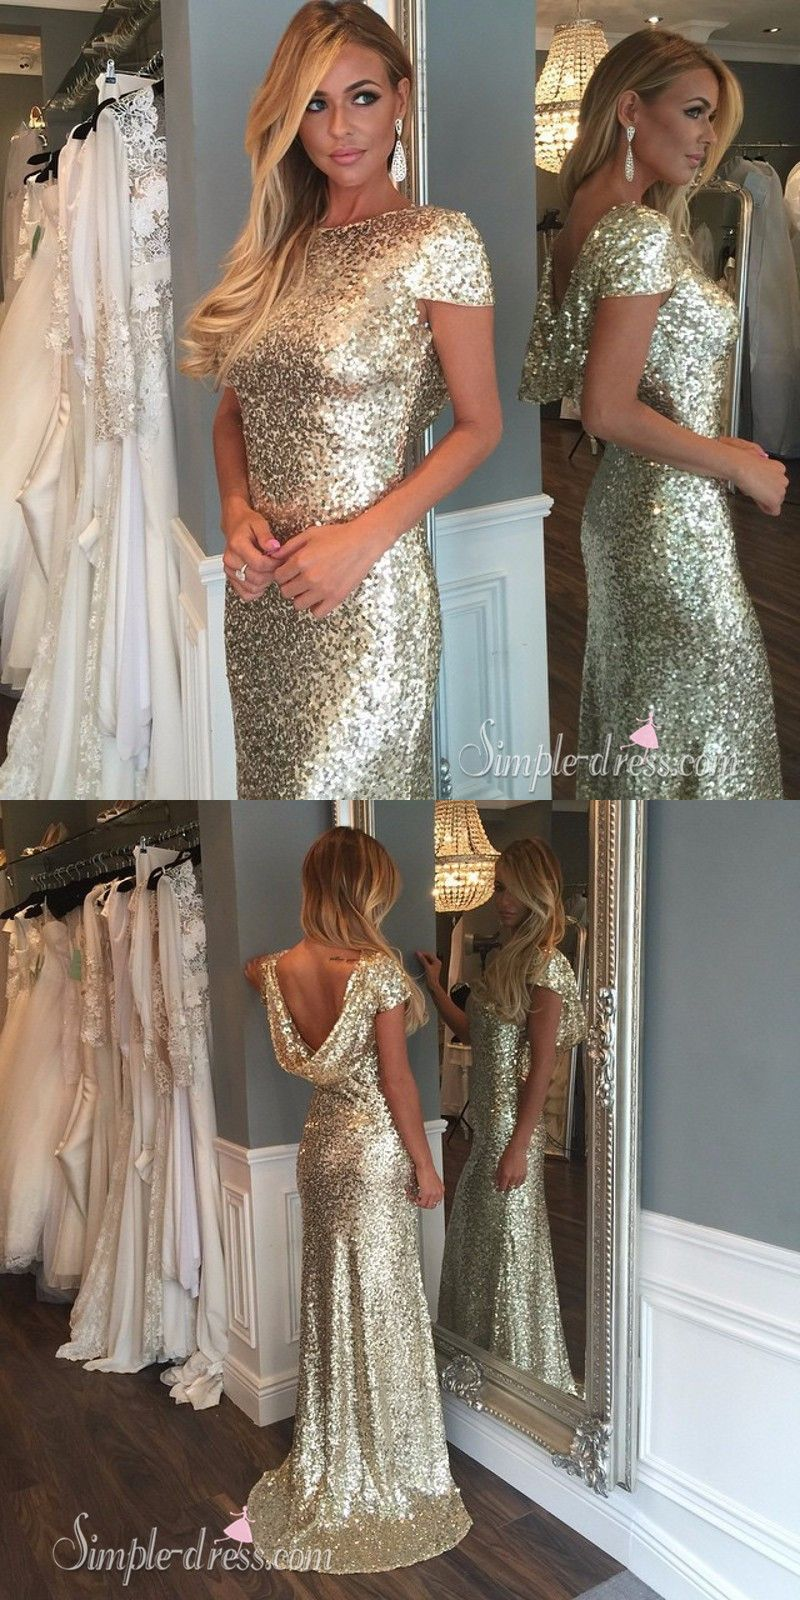 Sheath crew neck cap sleeveless sweep train gold sequins prom dress